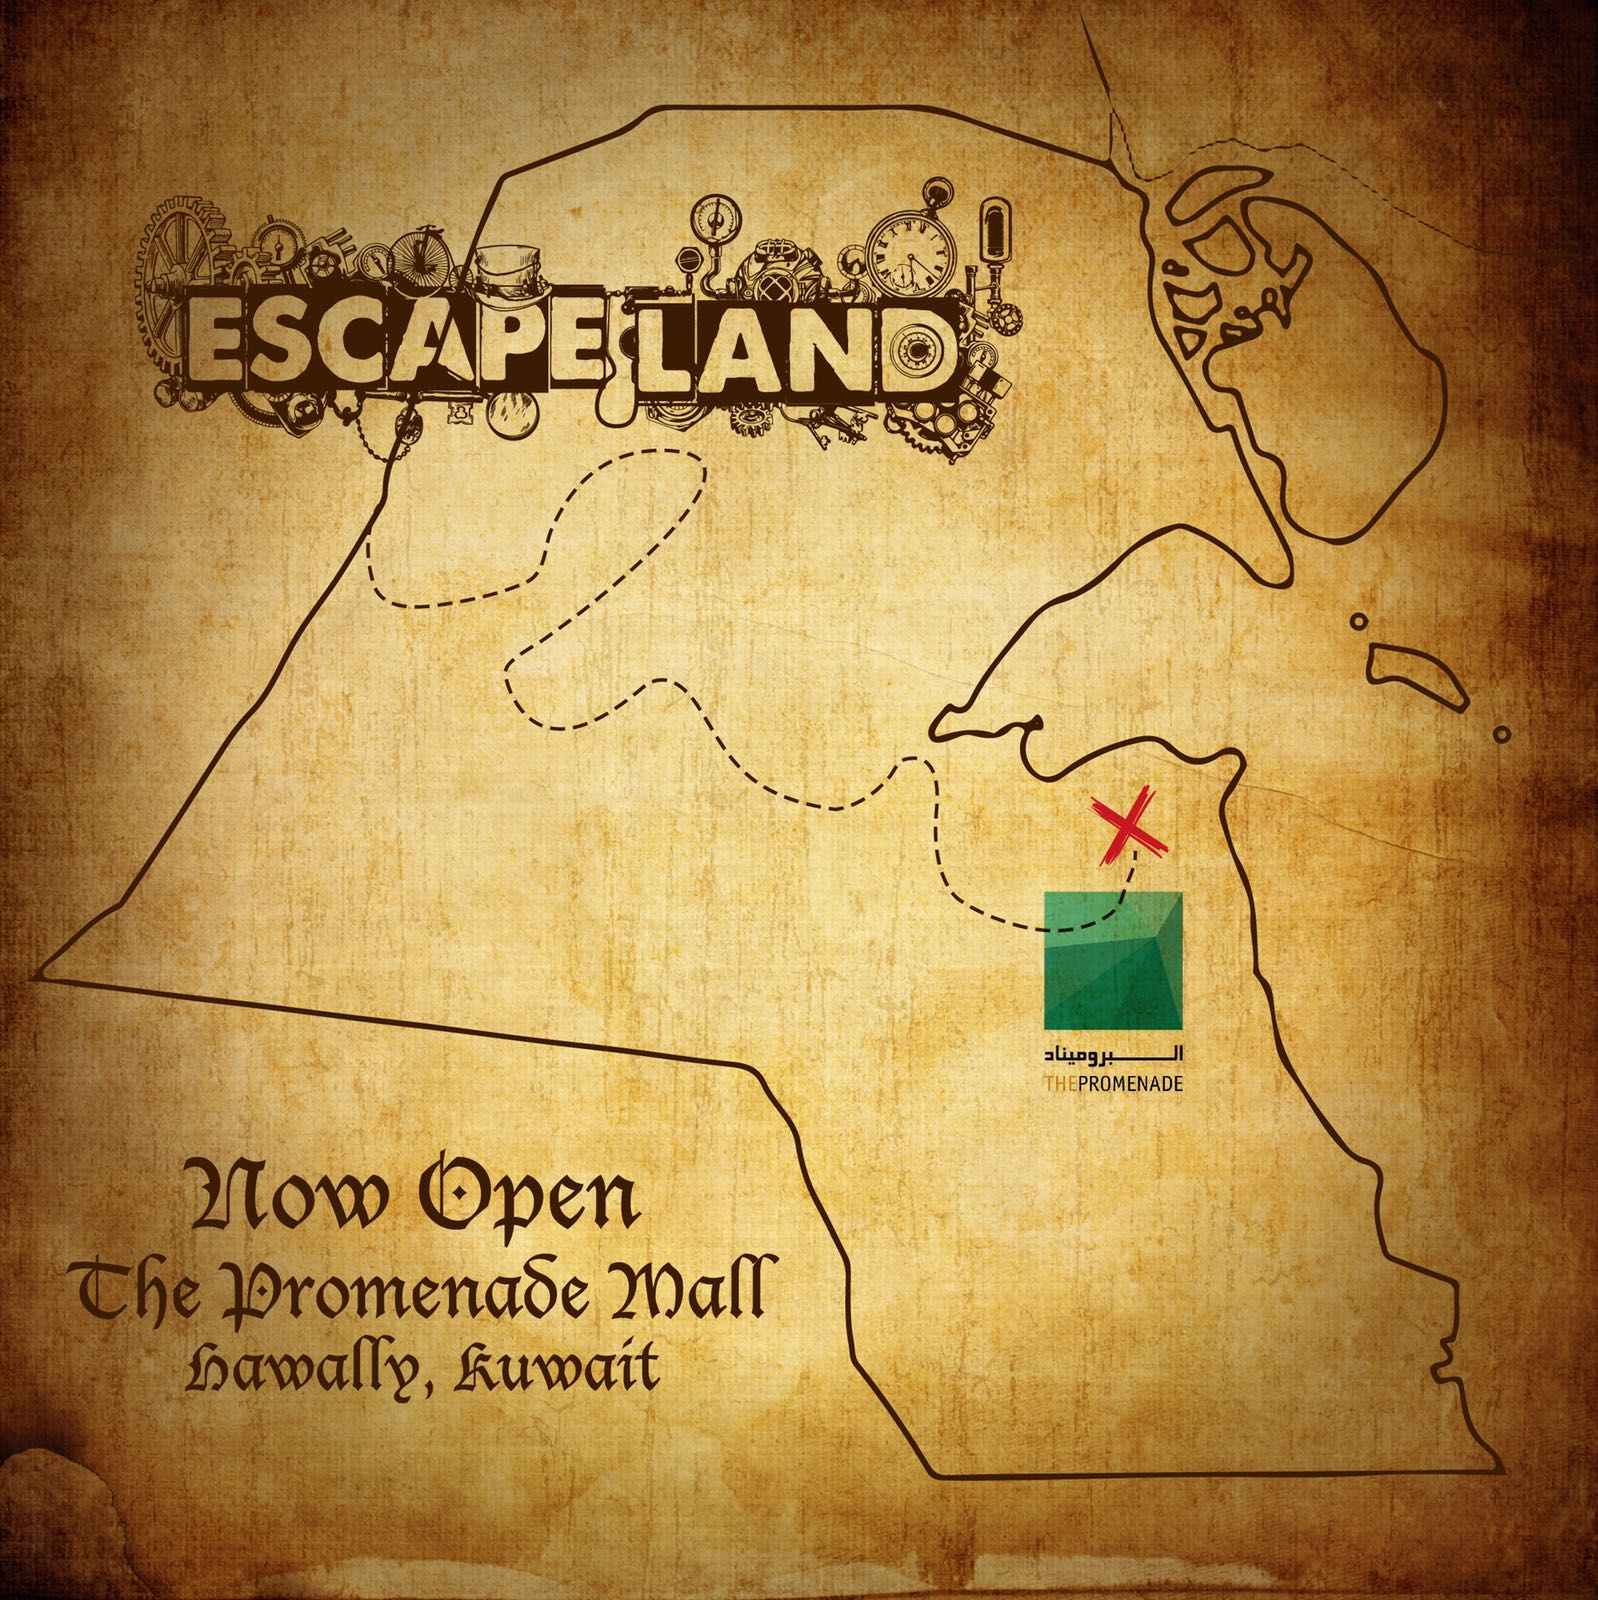 Escape Land